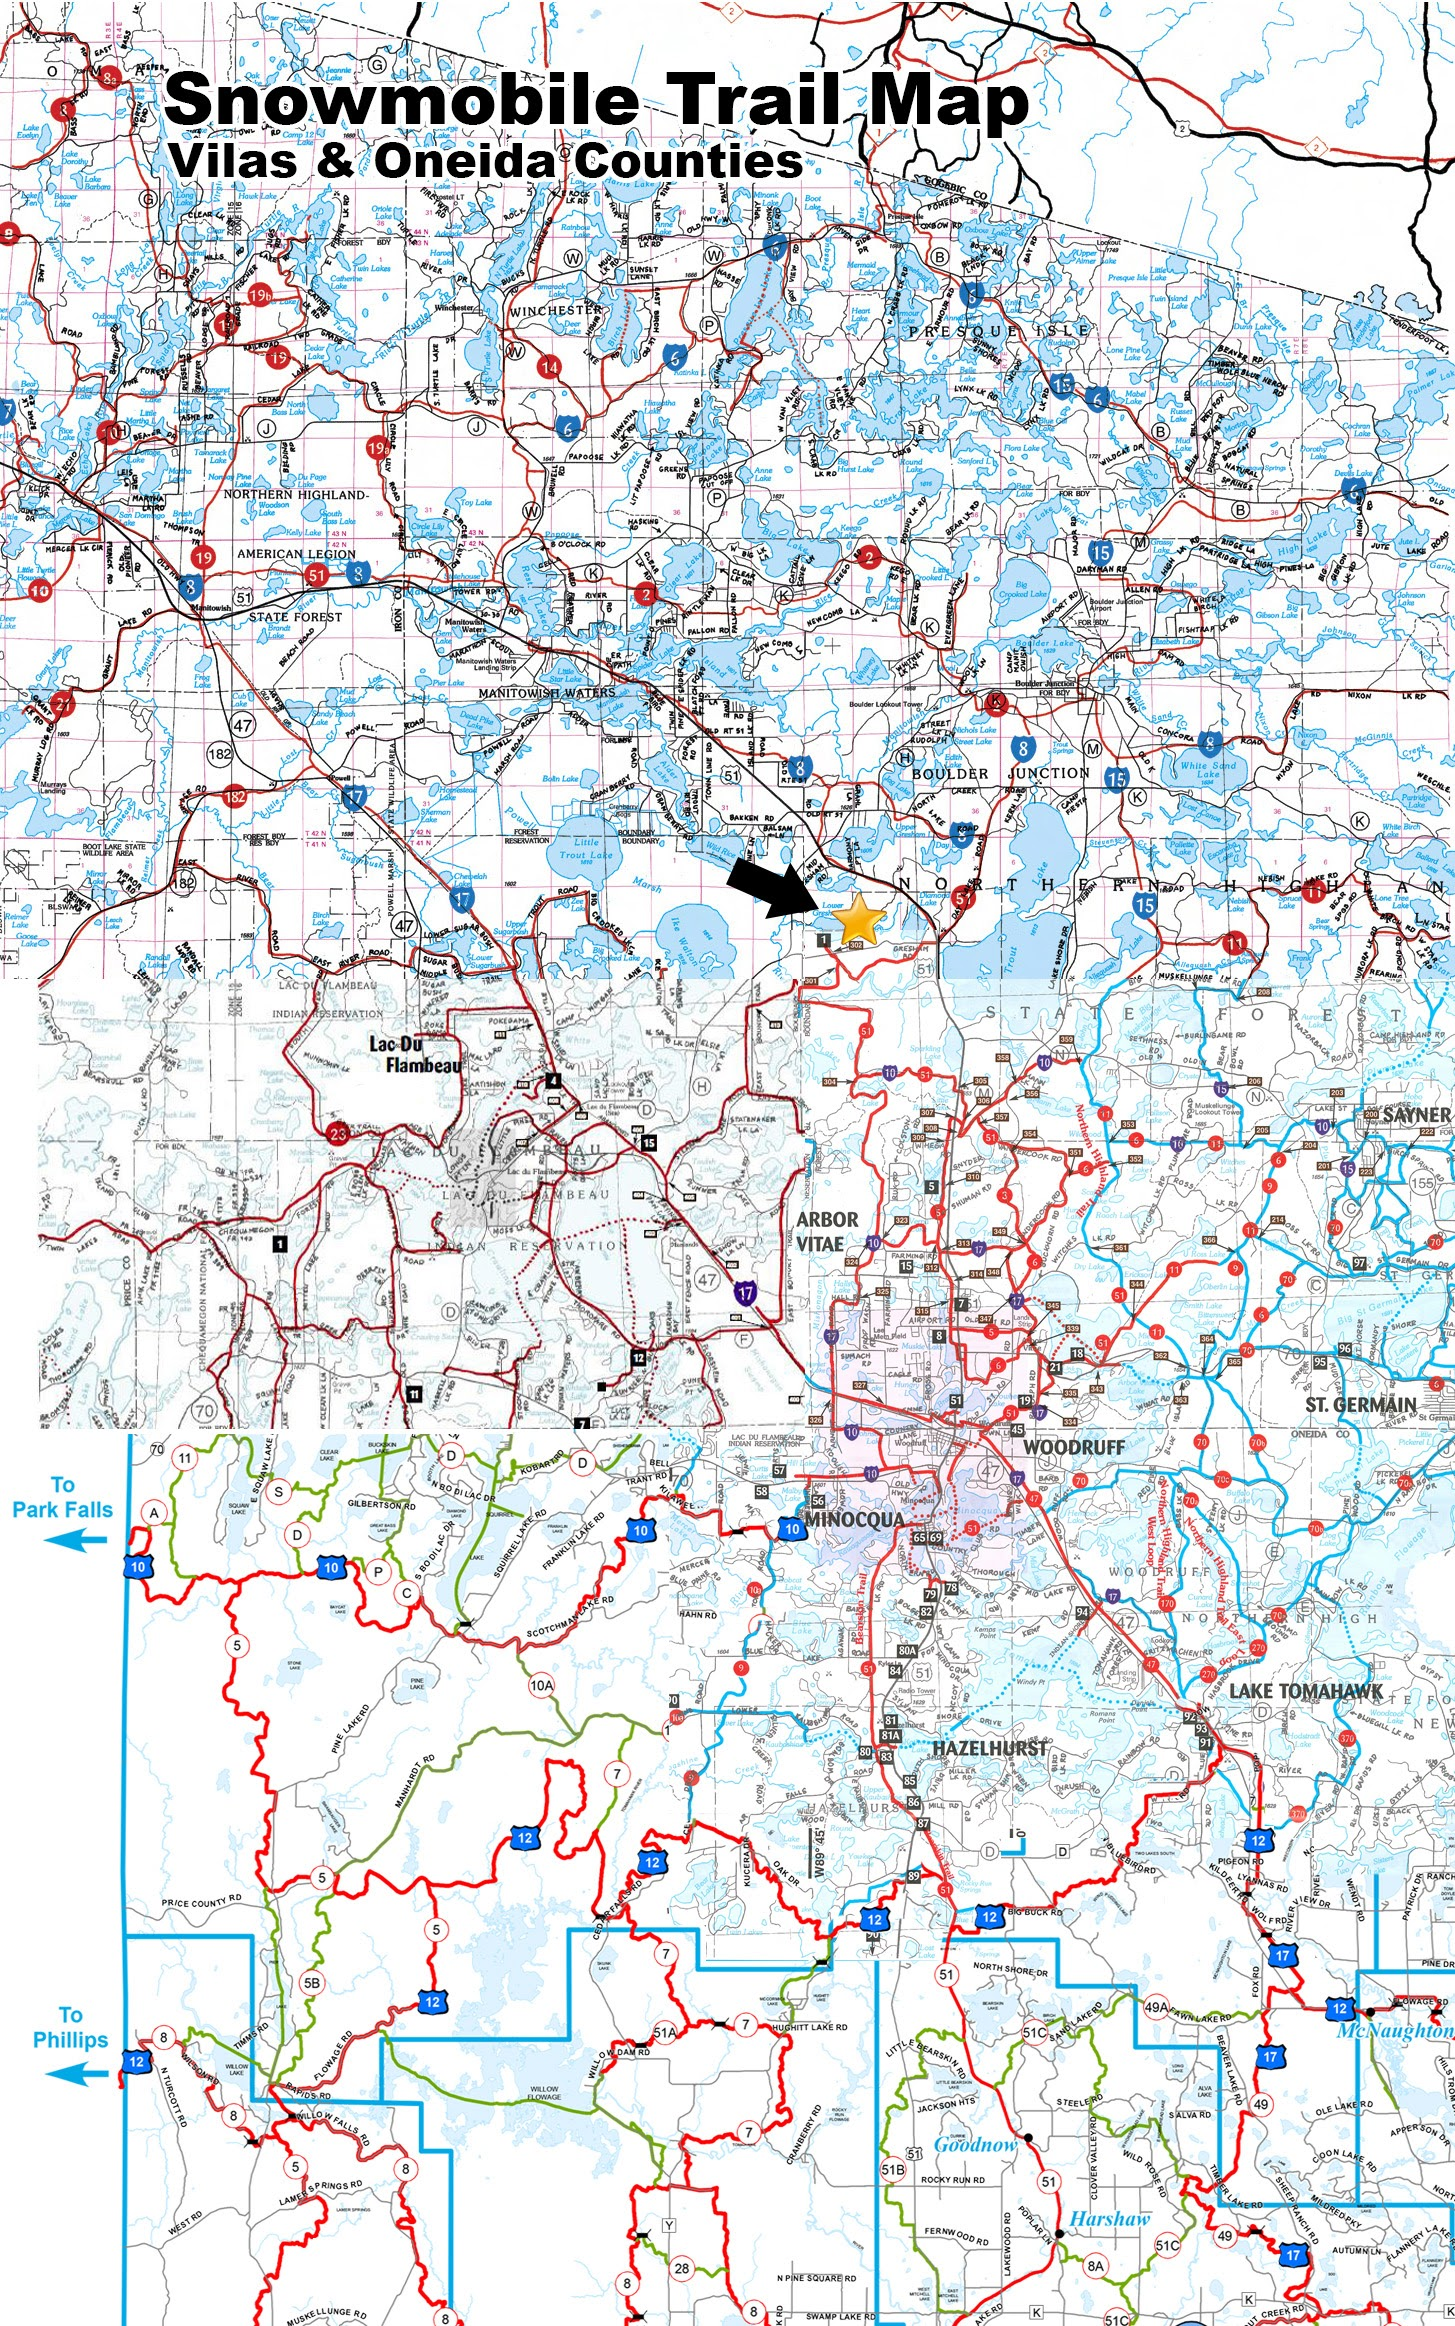 Vilas & Oneida county snowmobile maps